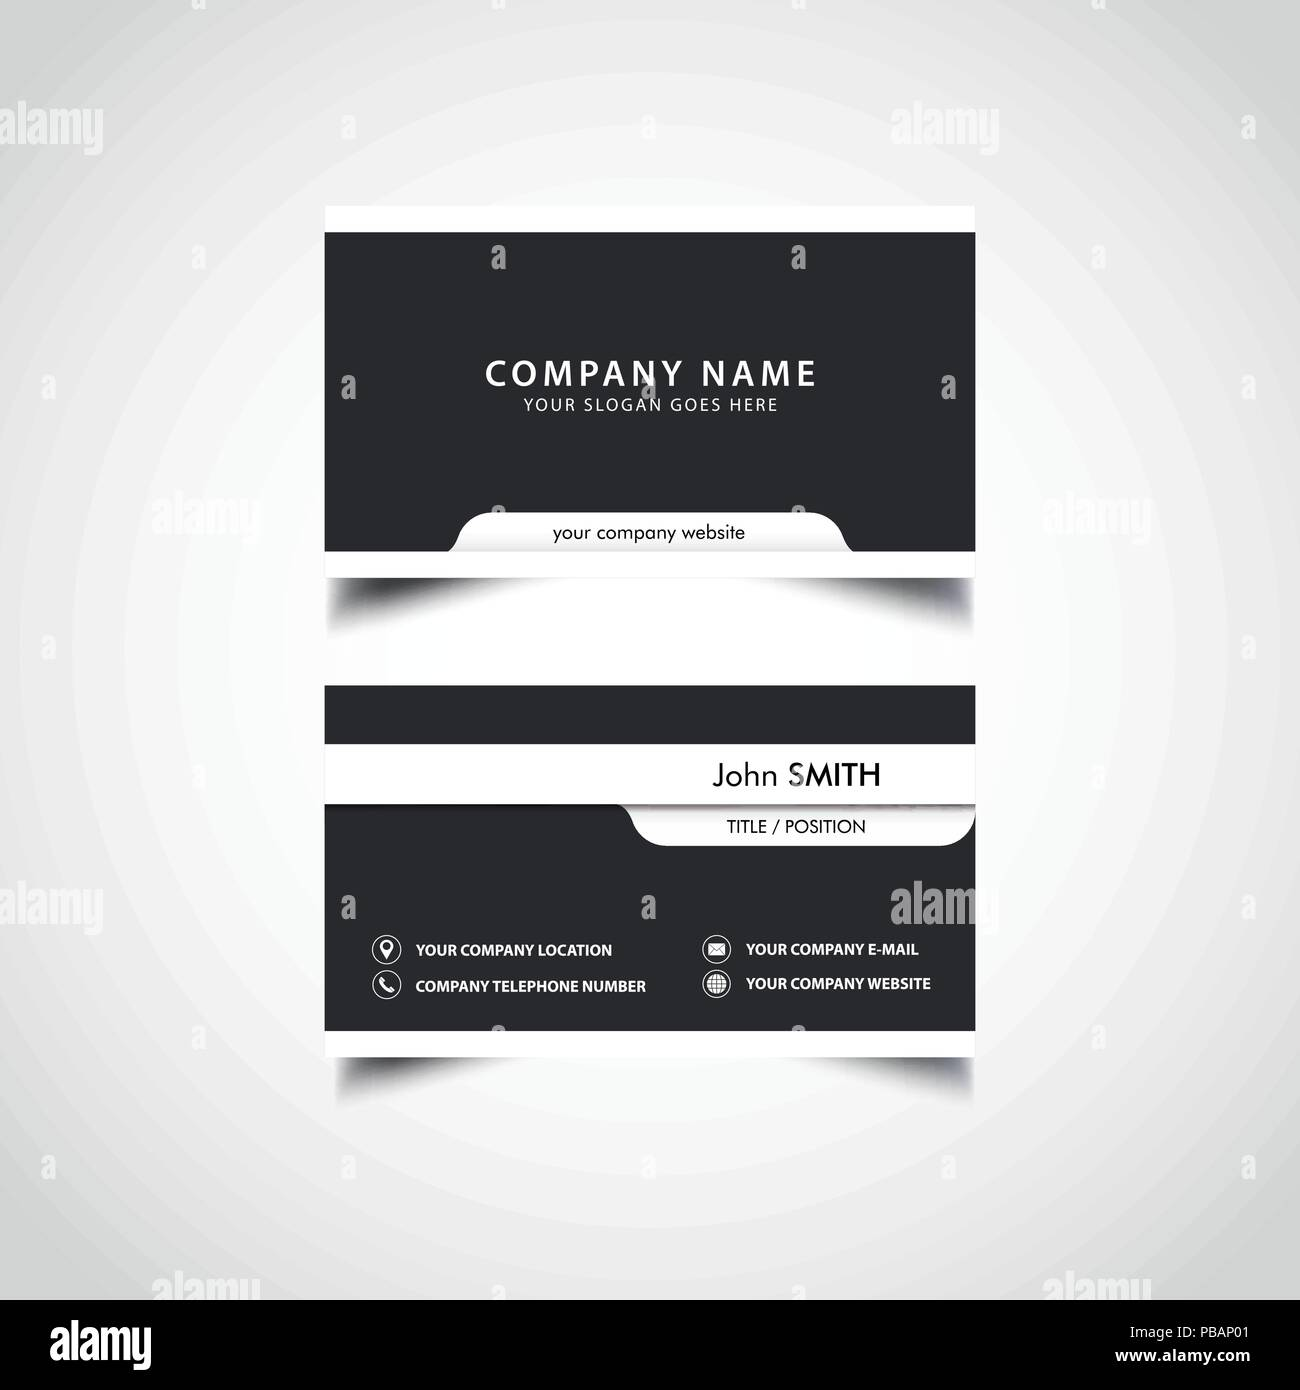 Simple business card template stock vector art illustration simple business card template friedricerecipe Image collections